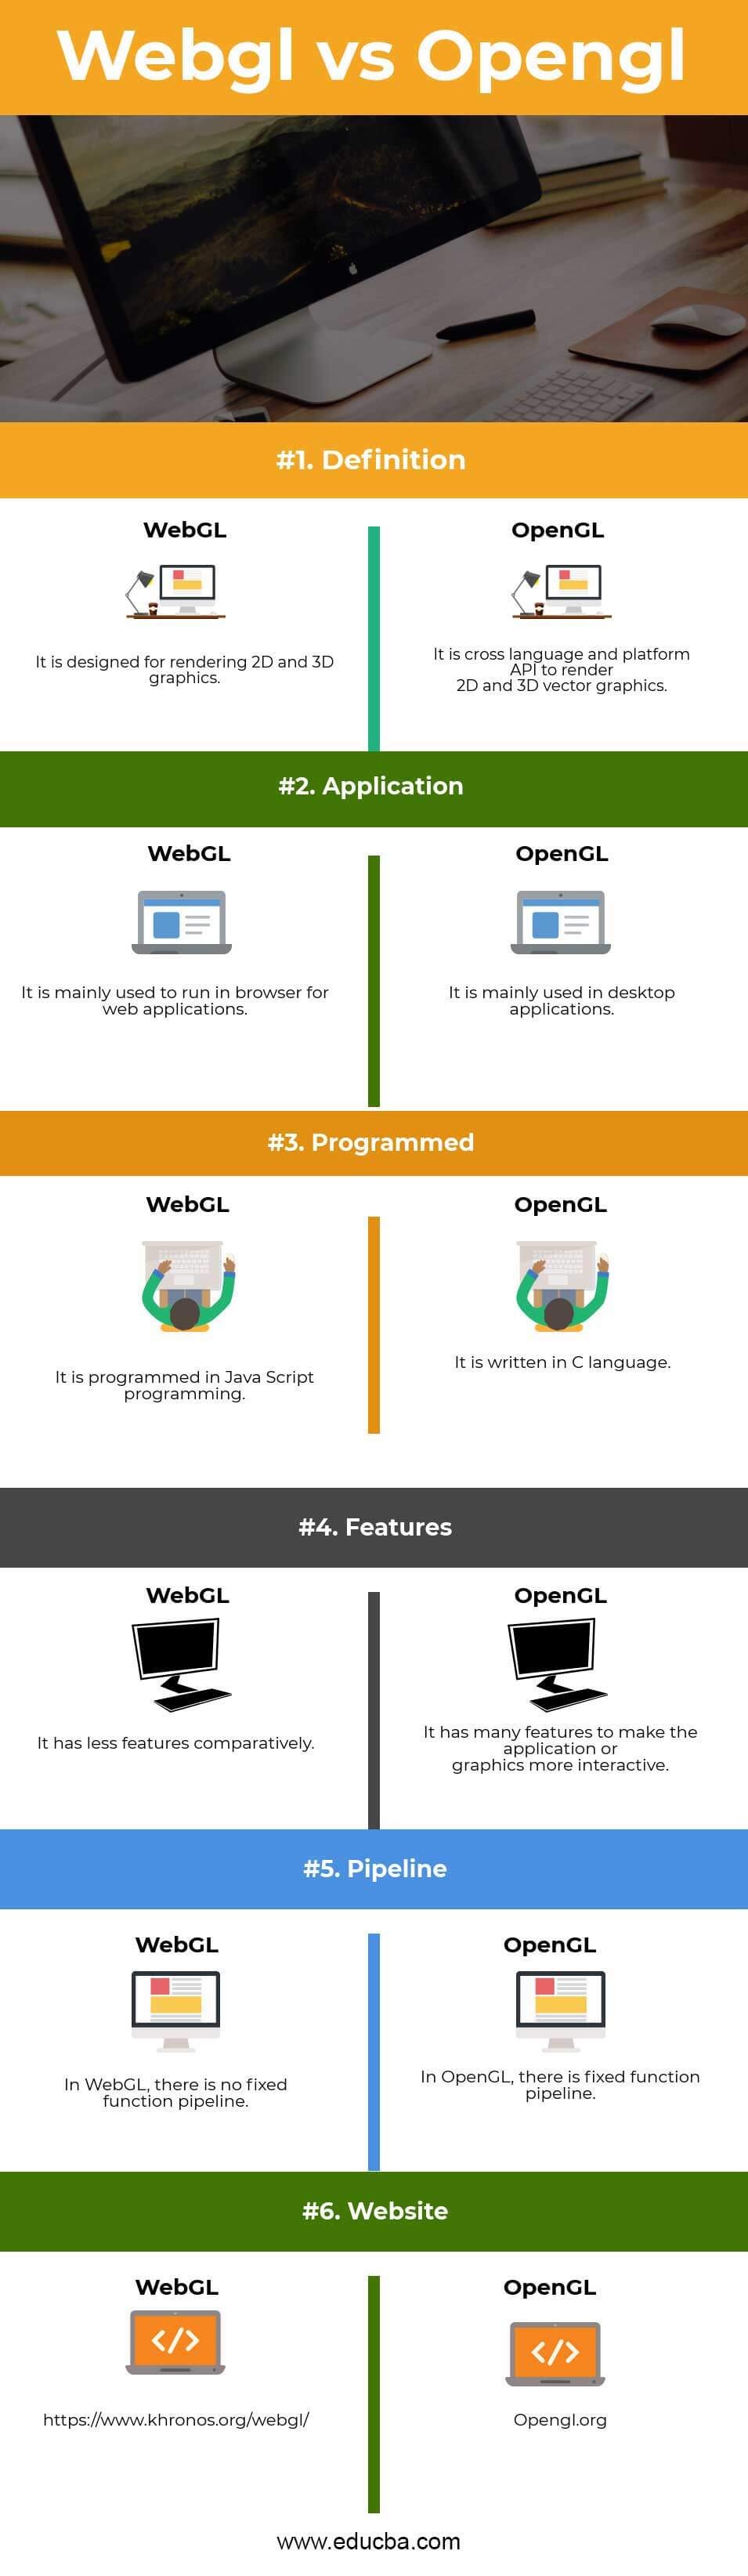 WebGL vs OpenGL | Know The 6 Most Useful Differences